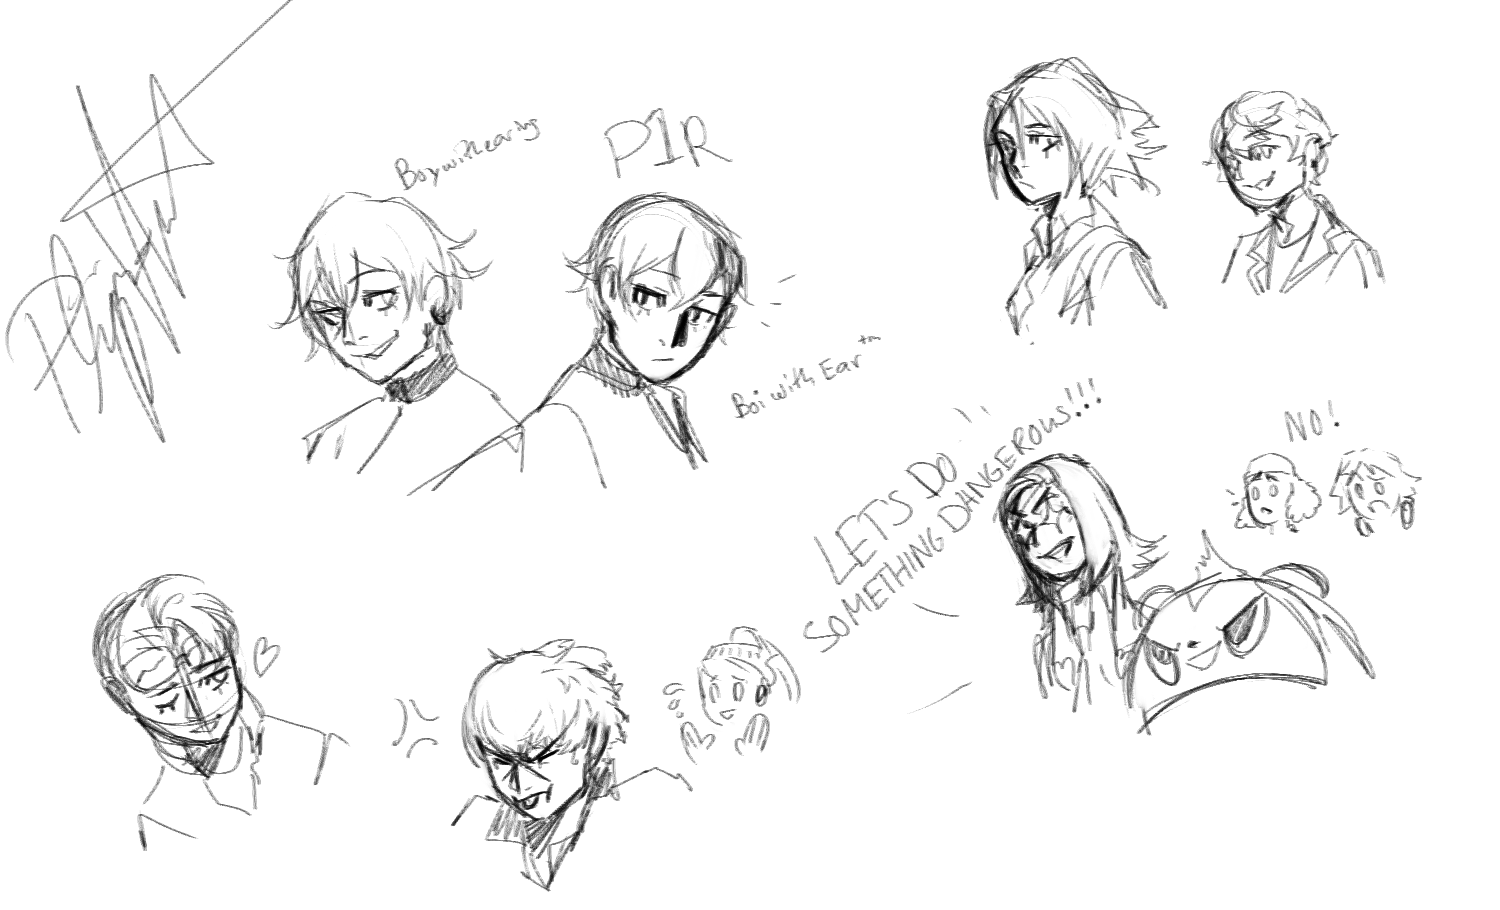 Some midnight persona doodles